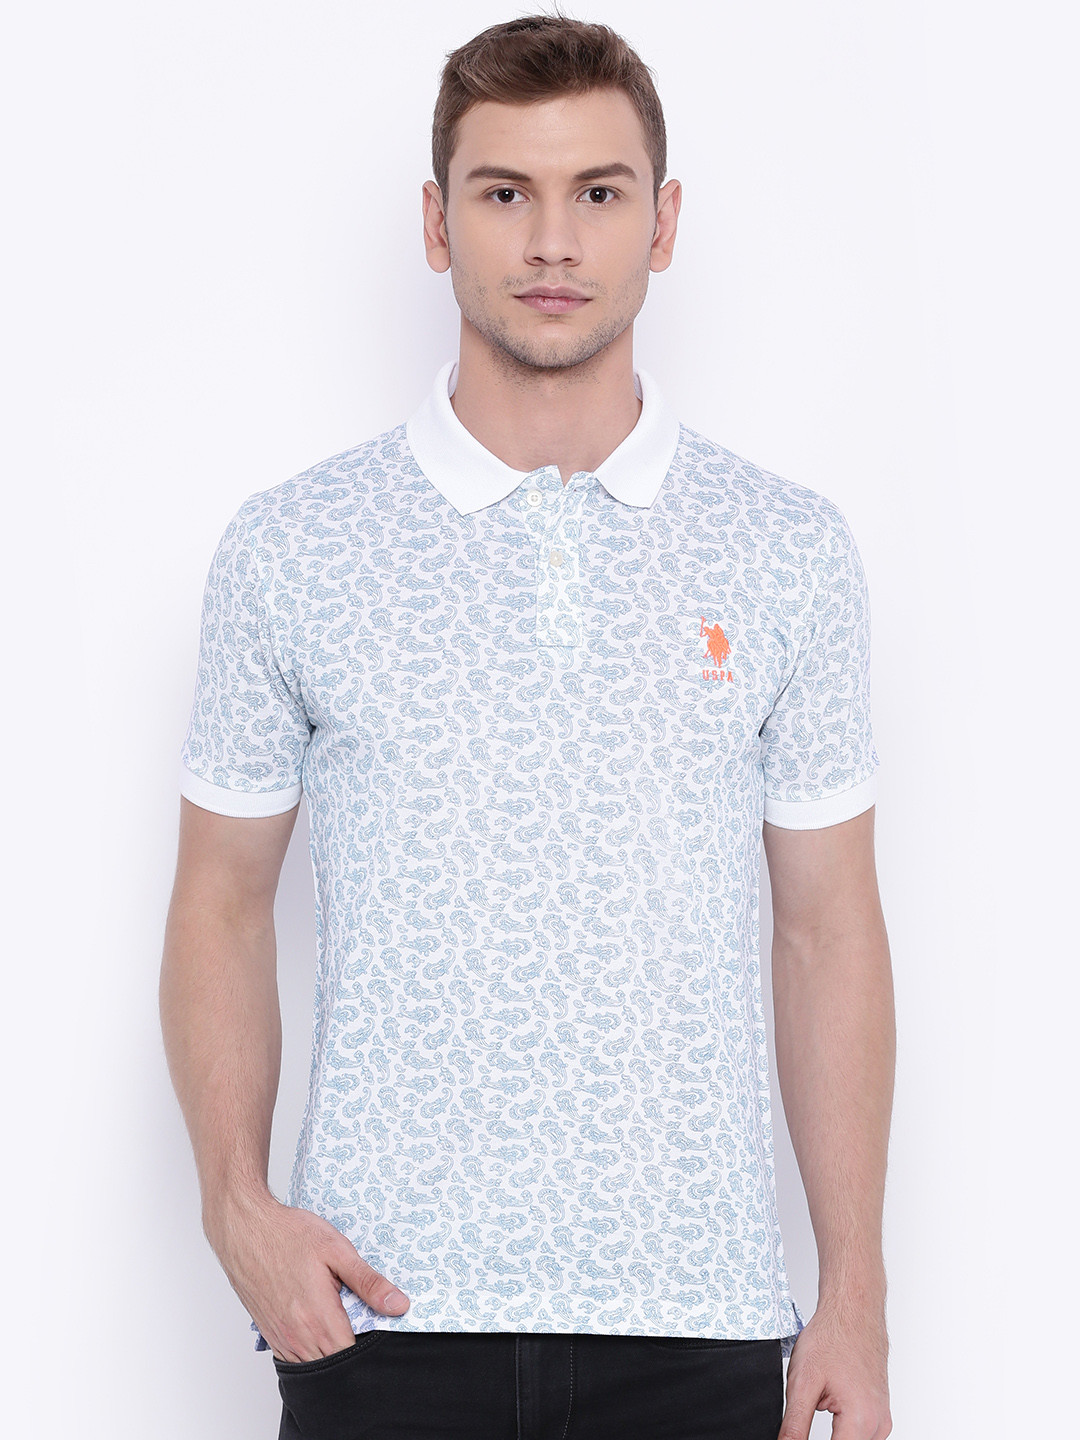 U s polo white printed smart polo t shirt g3 mts4786 for Printed shirts for men